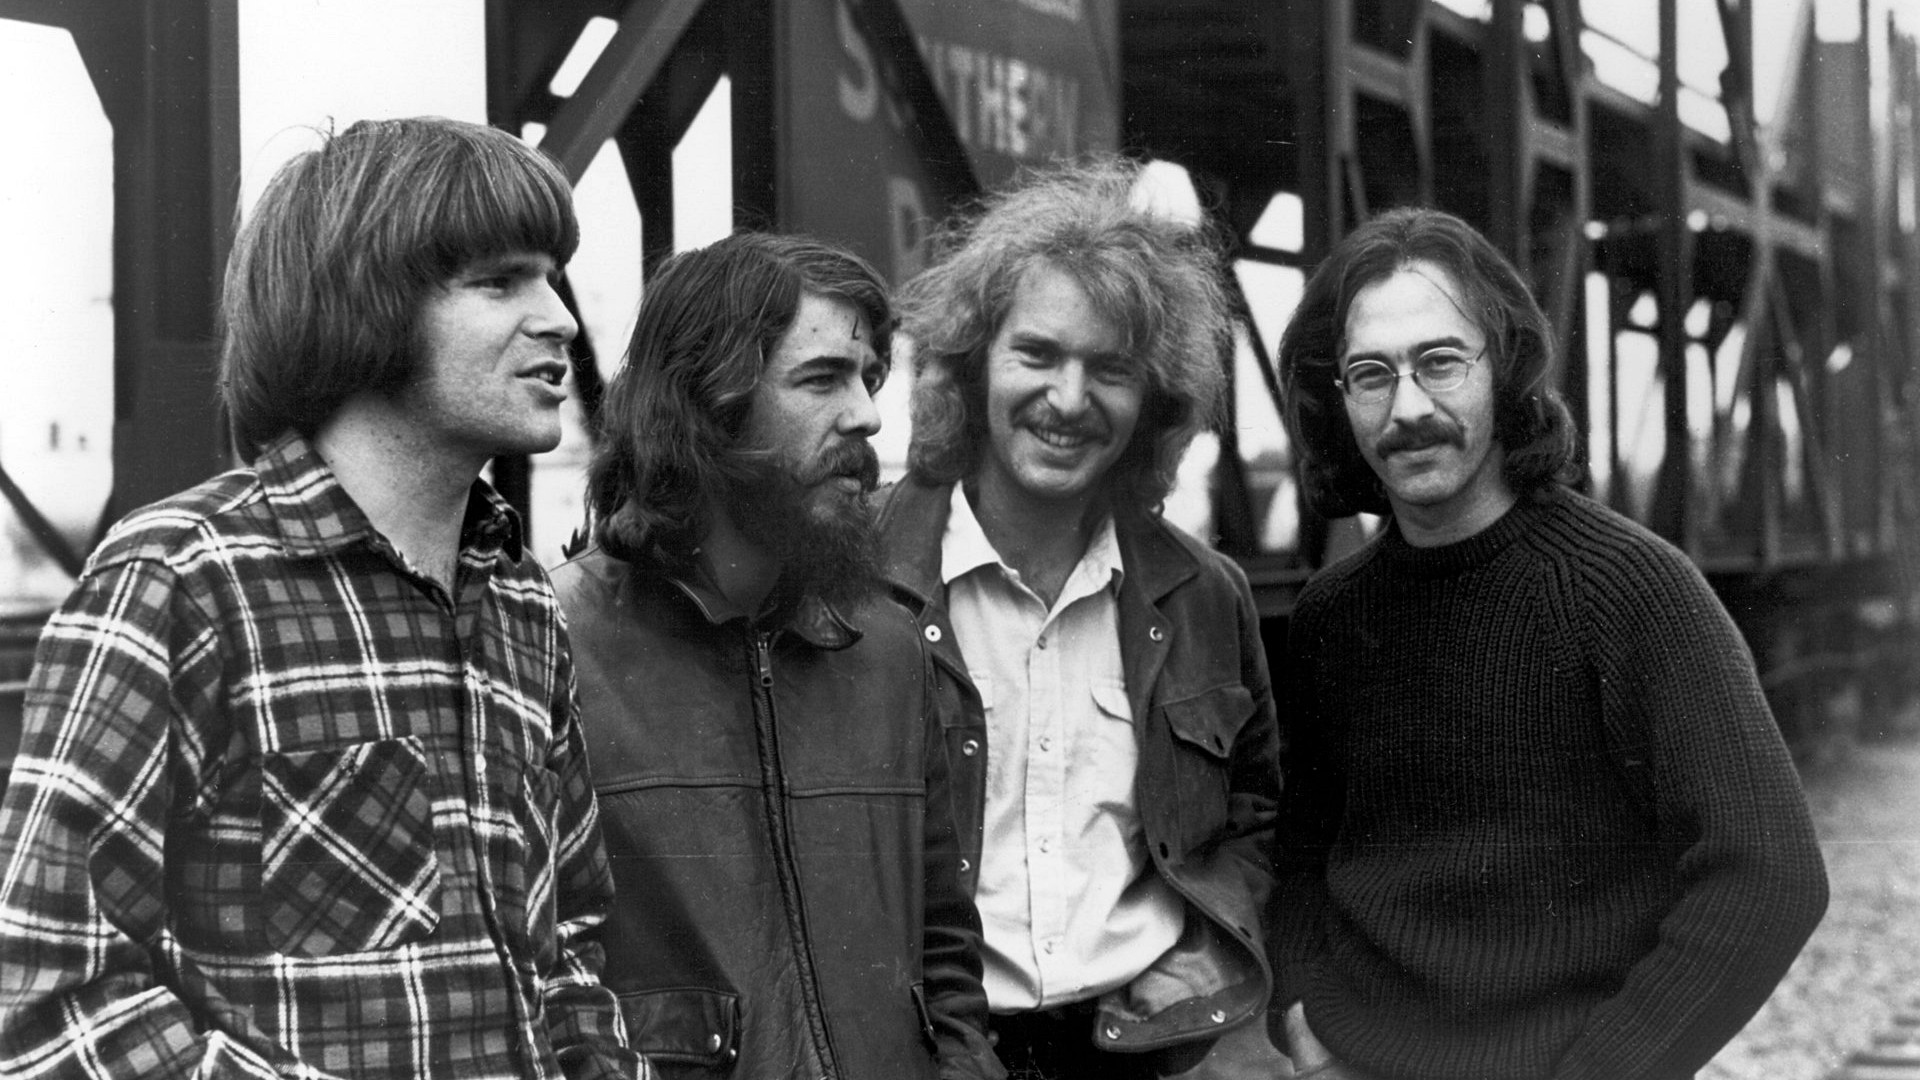 Have You Ever Seen The Rain av Creedence Clearwater Revival